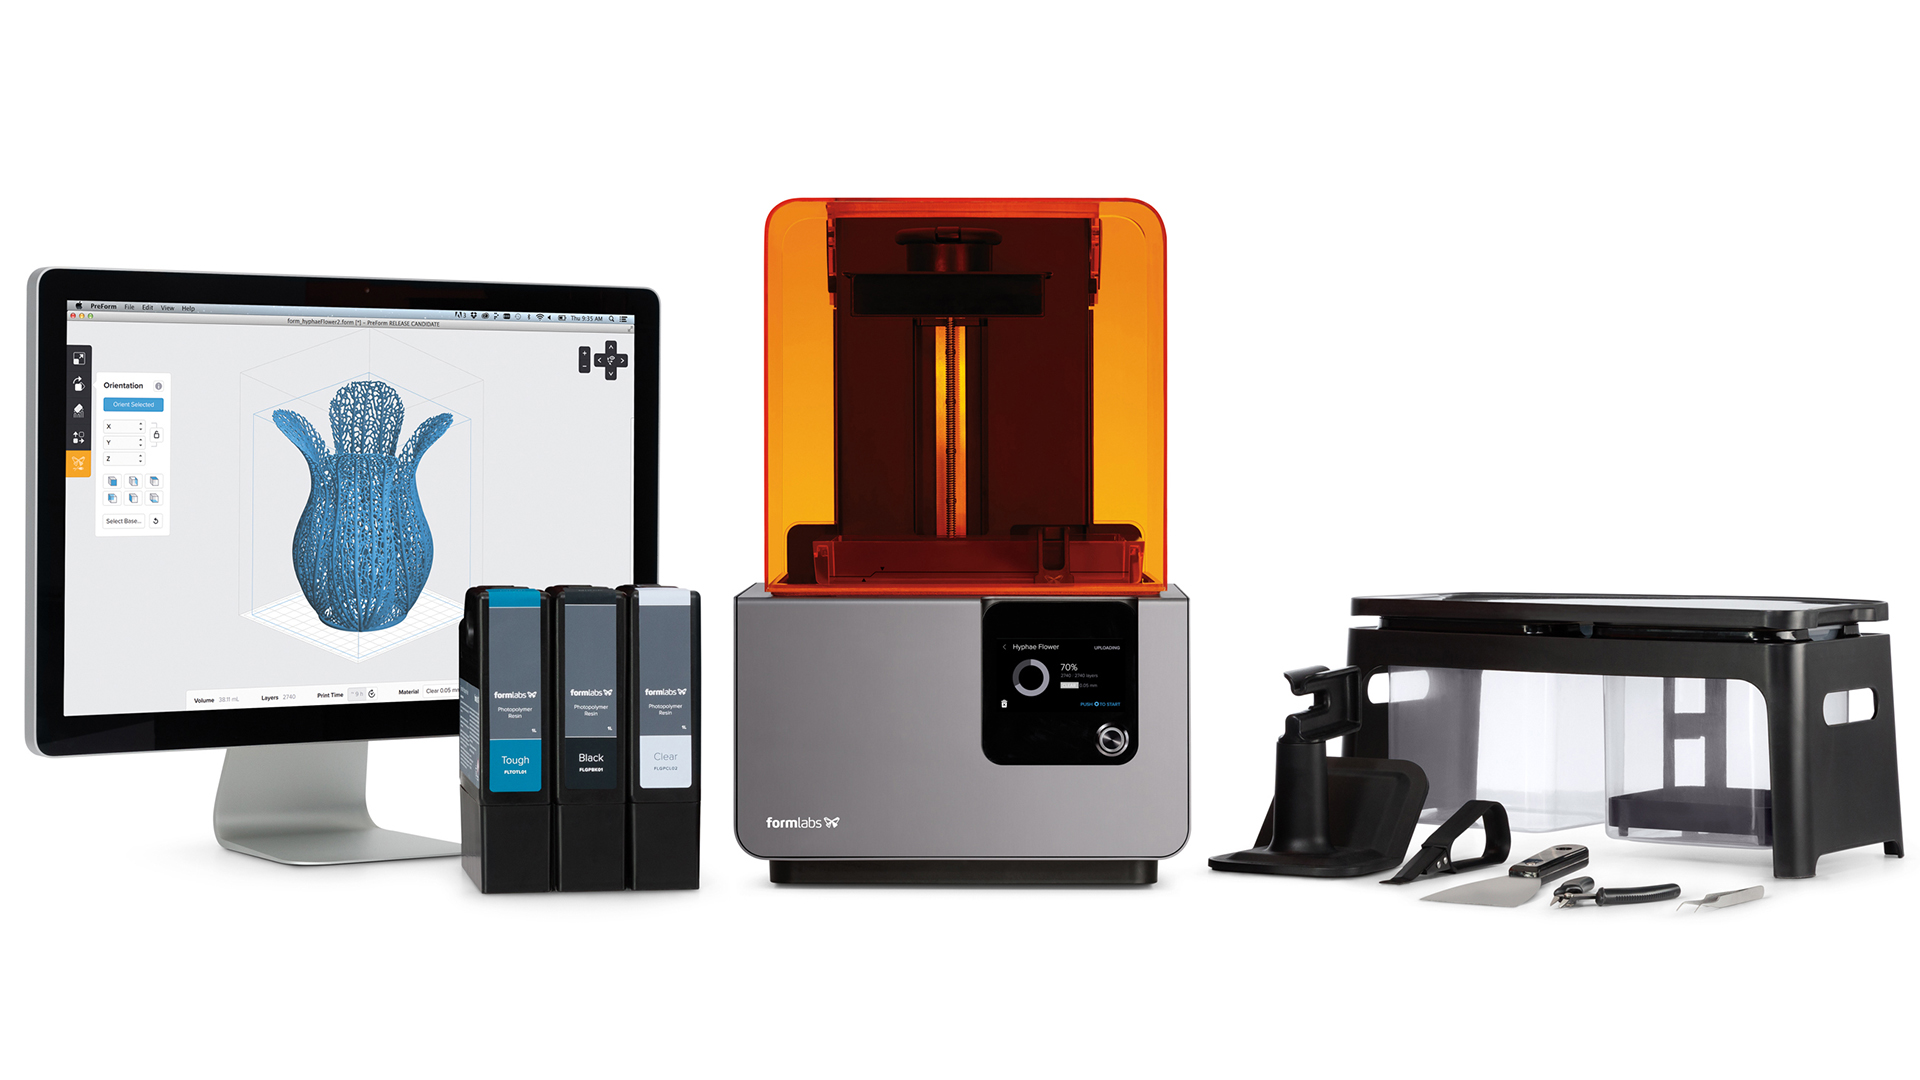 What You Should Know about the Form 2 SLA 3D Printer - Tested